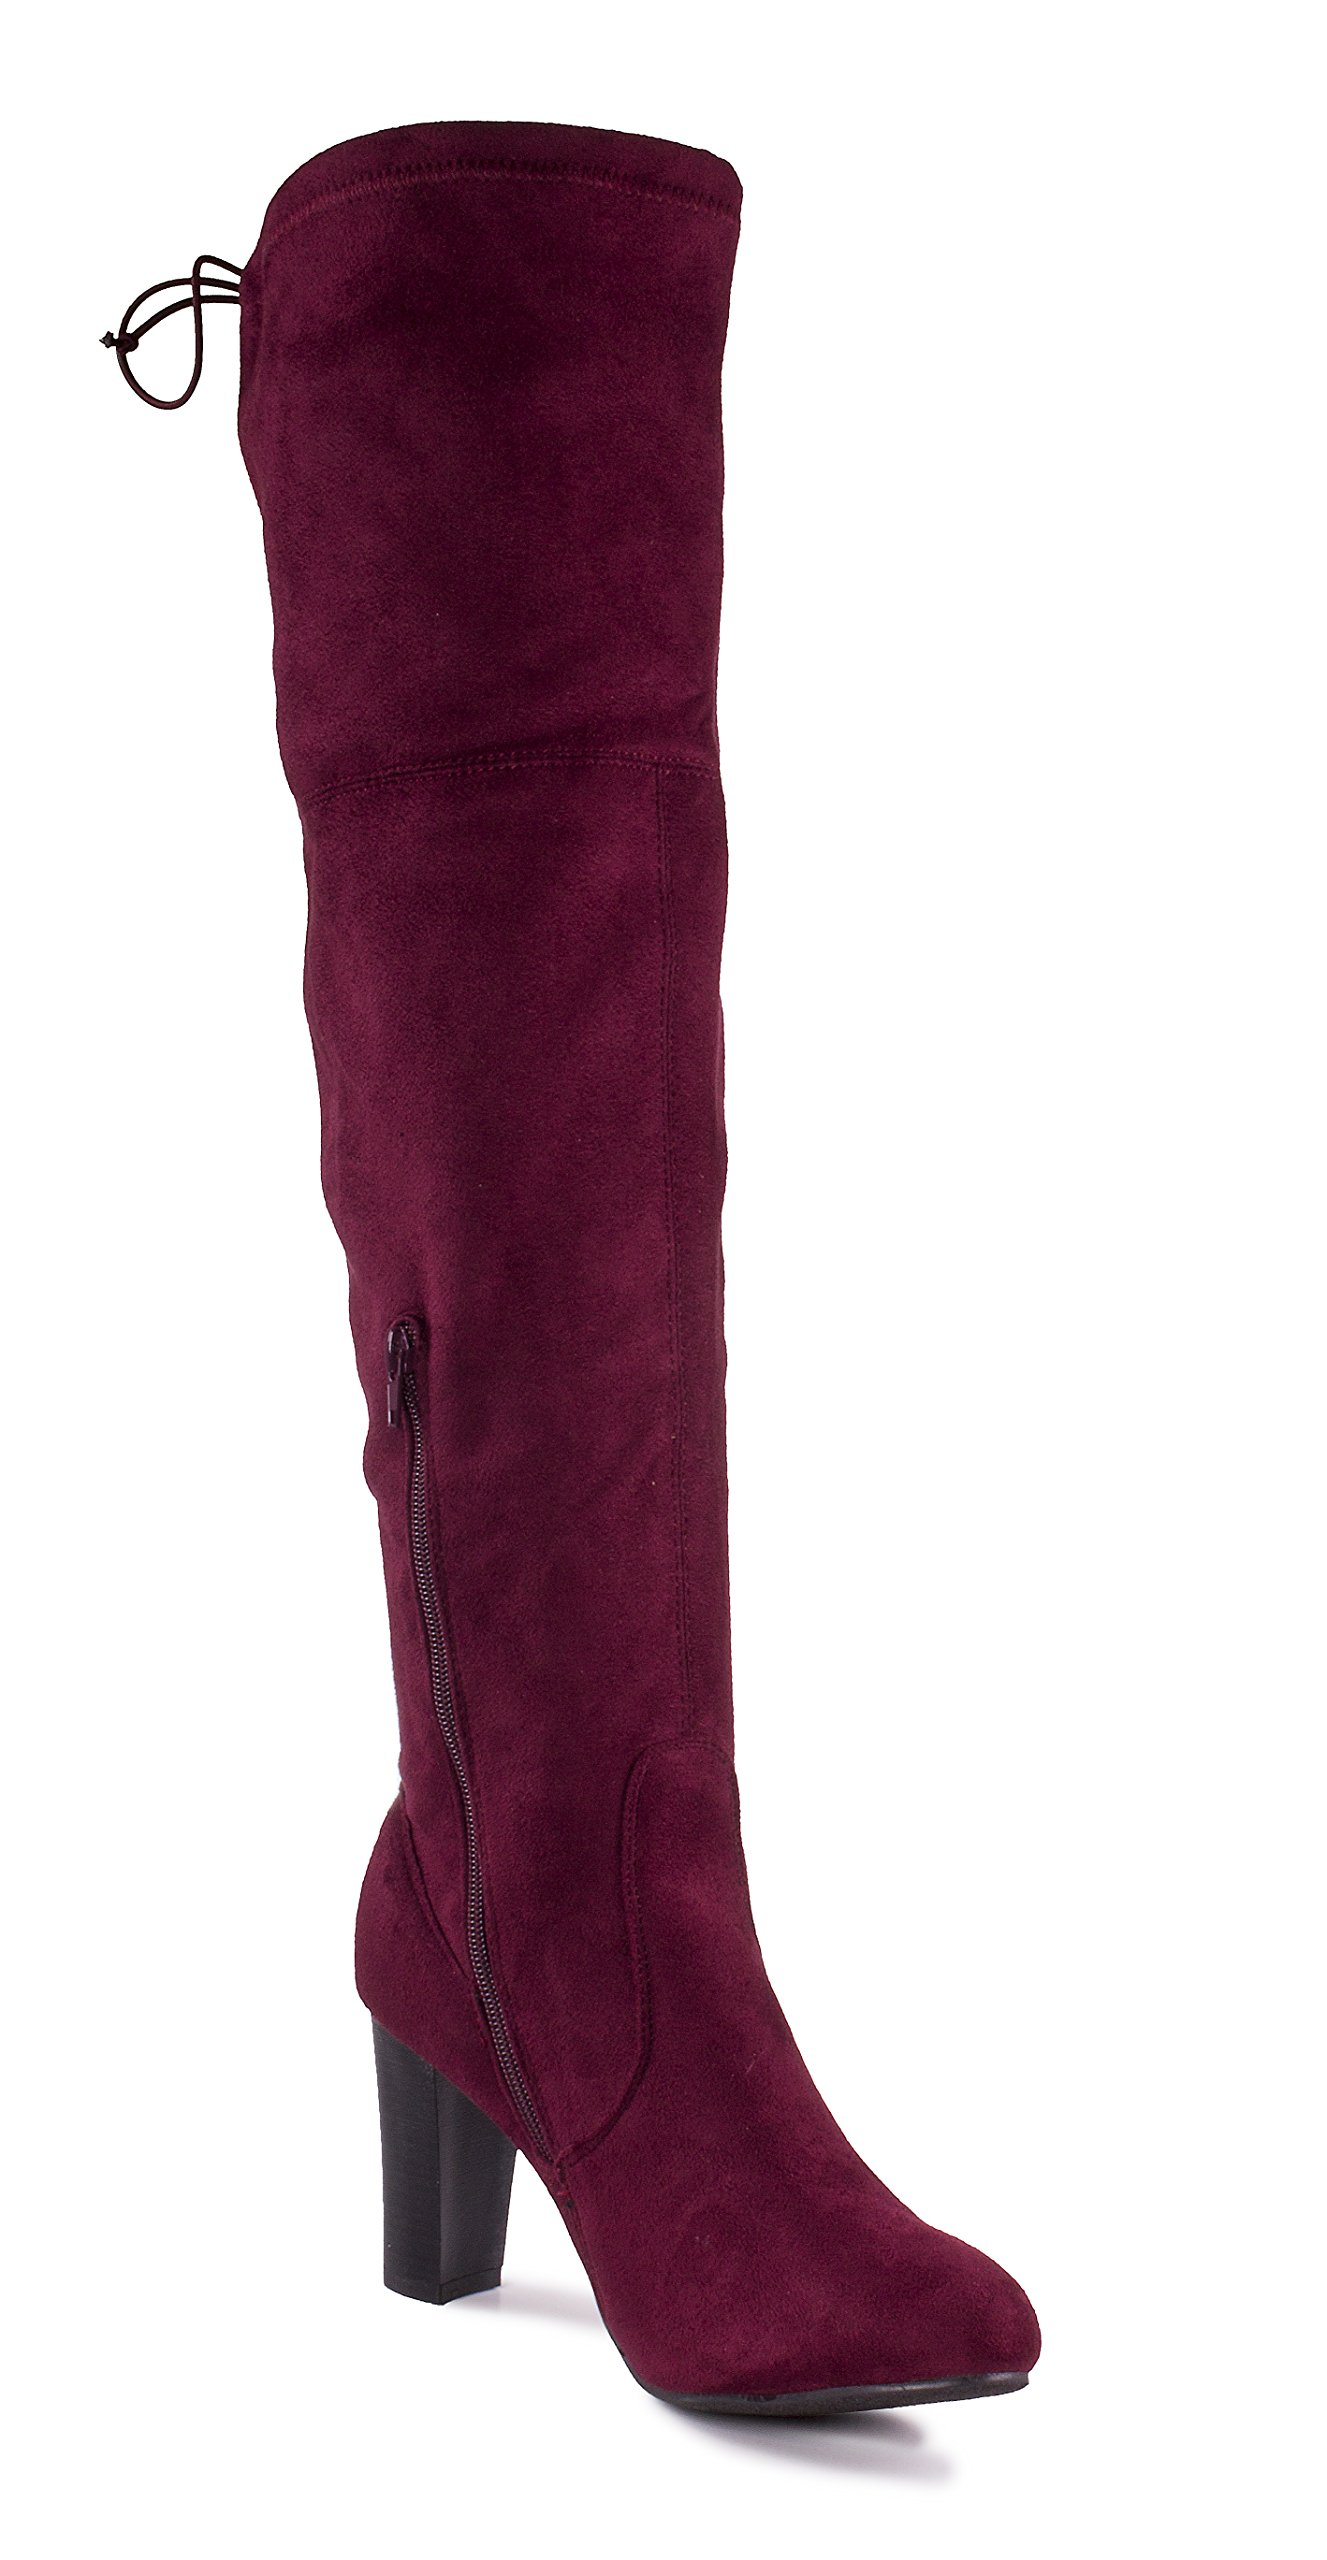 Charles Albert Women's Suede Thigh High Over-The-Knee Stacked Heeled Boot in Burgundy Size: 9 by Charles Albert